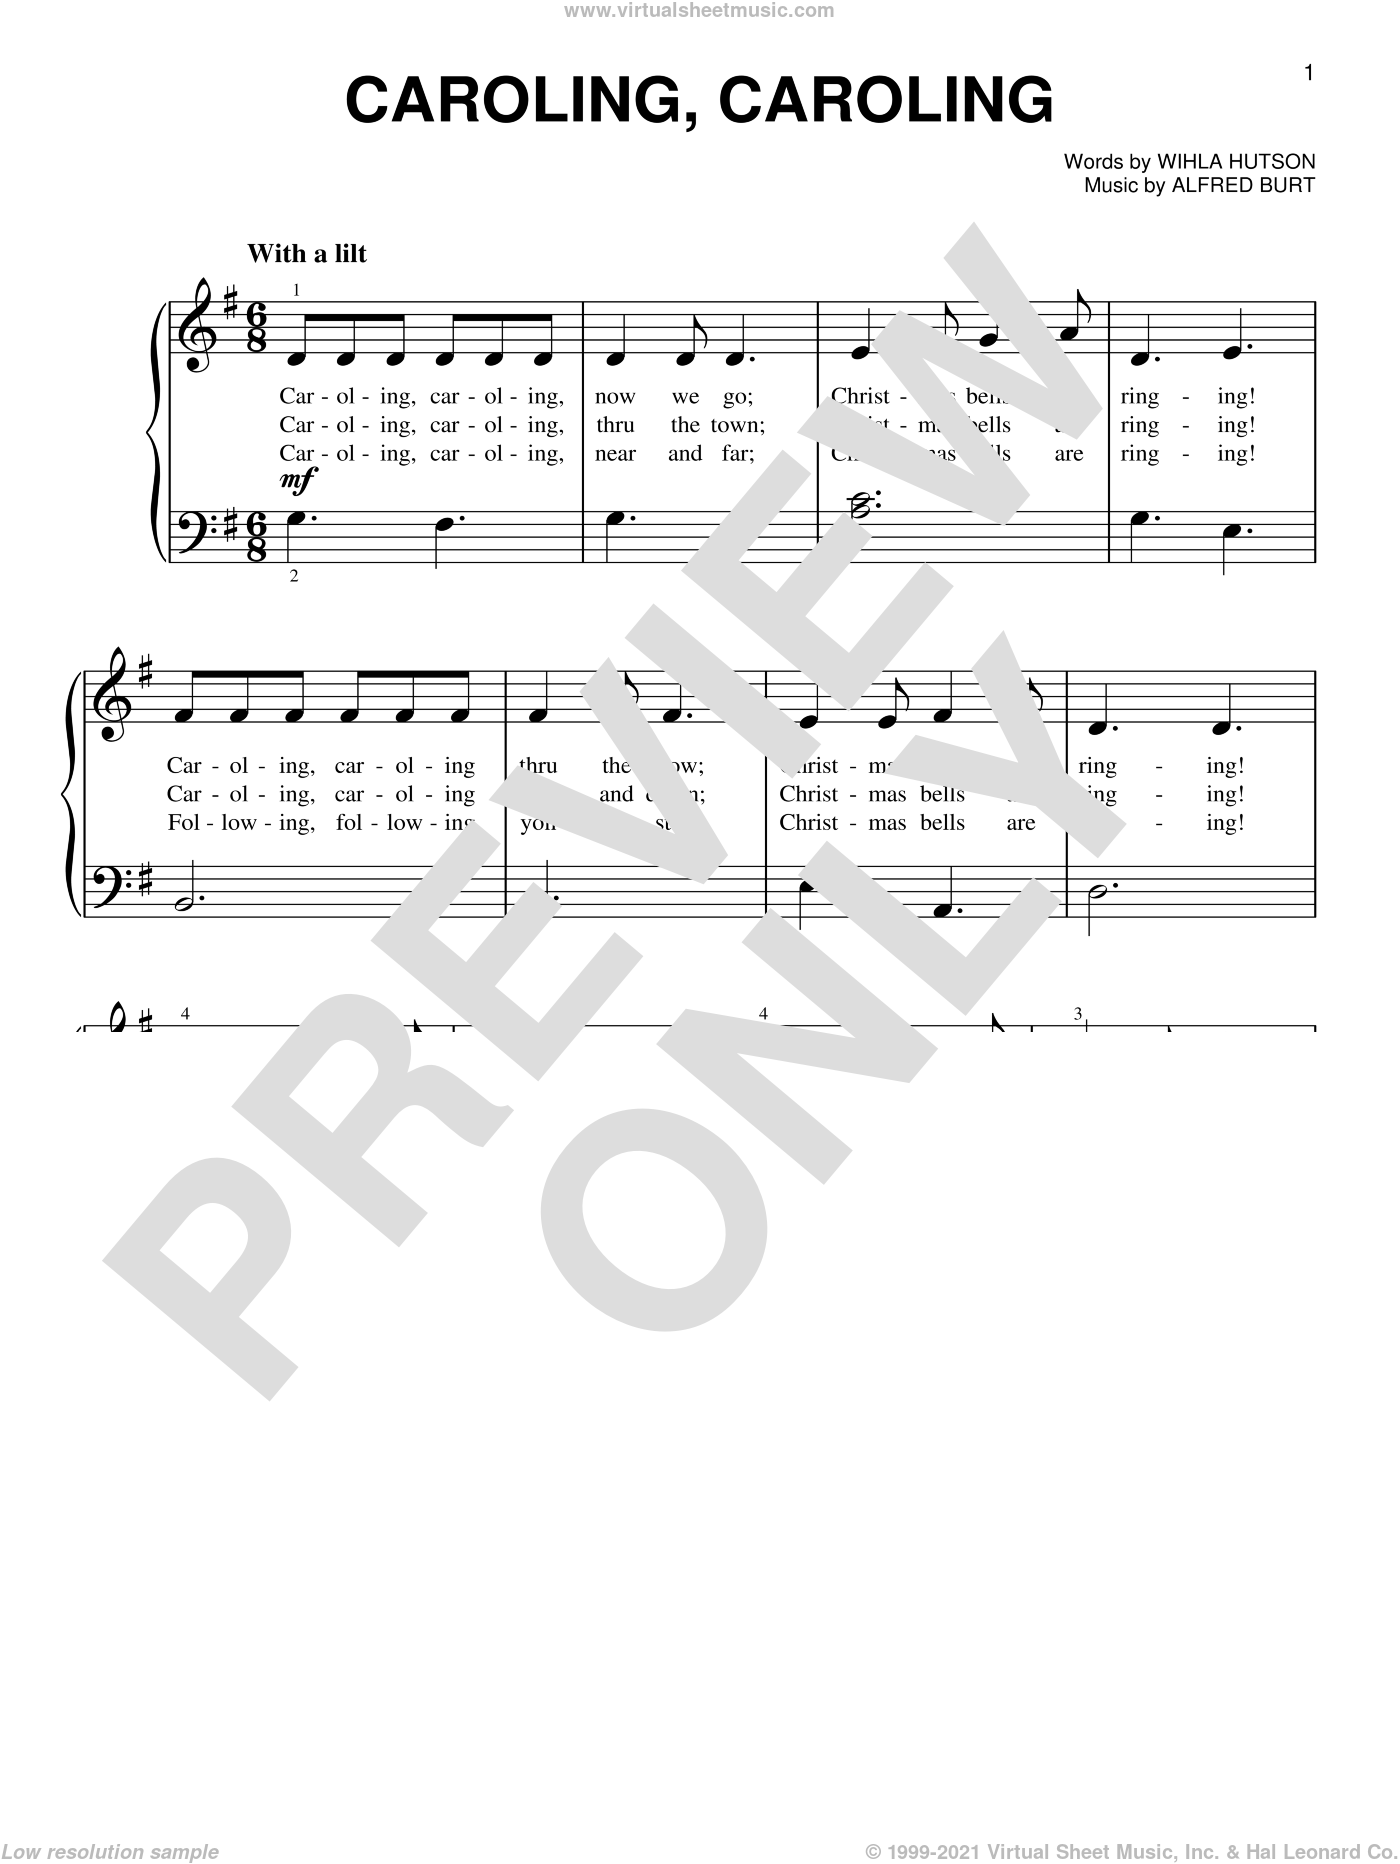 Caroling, Caroling sheet music for piano solo by Alfred Burt and Wihla Hutson, beginner skill level